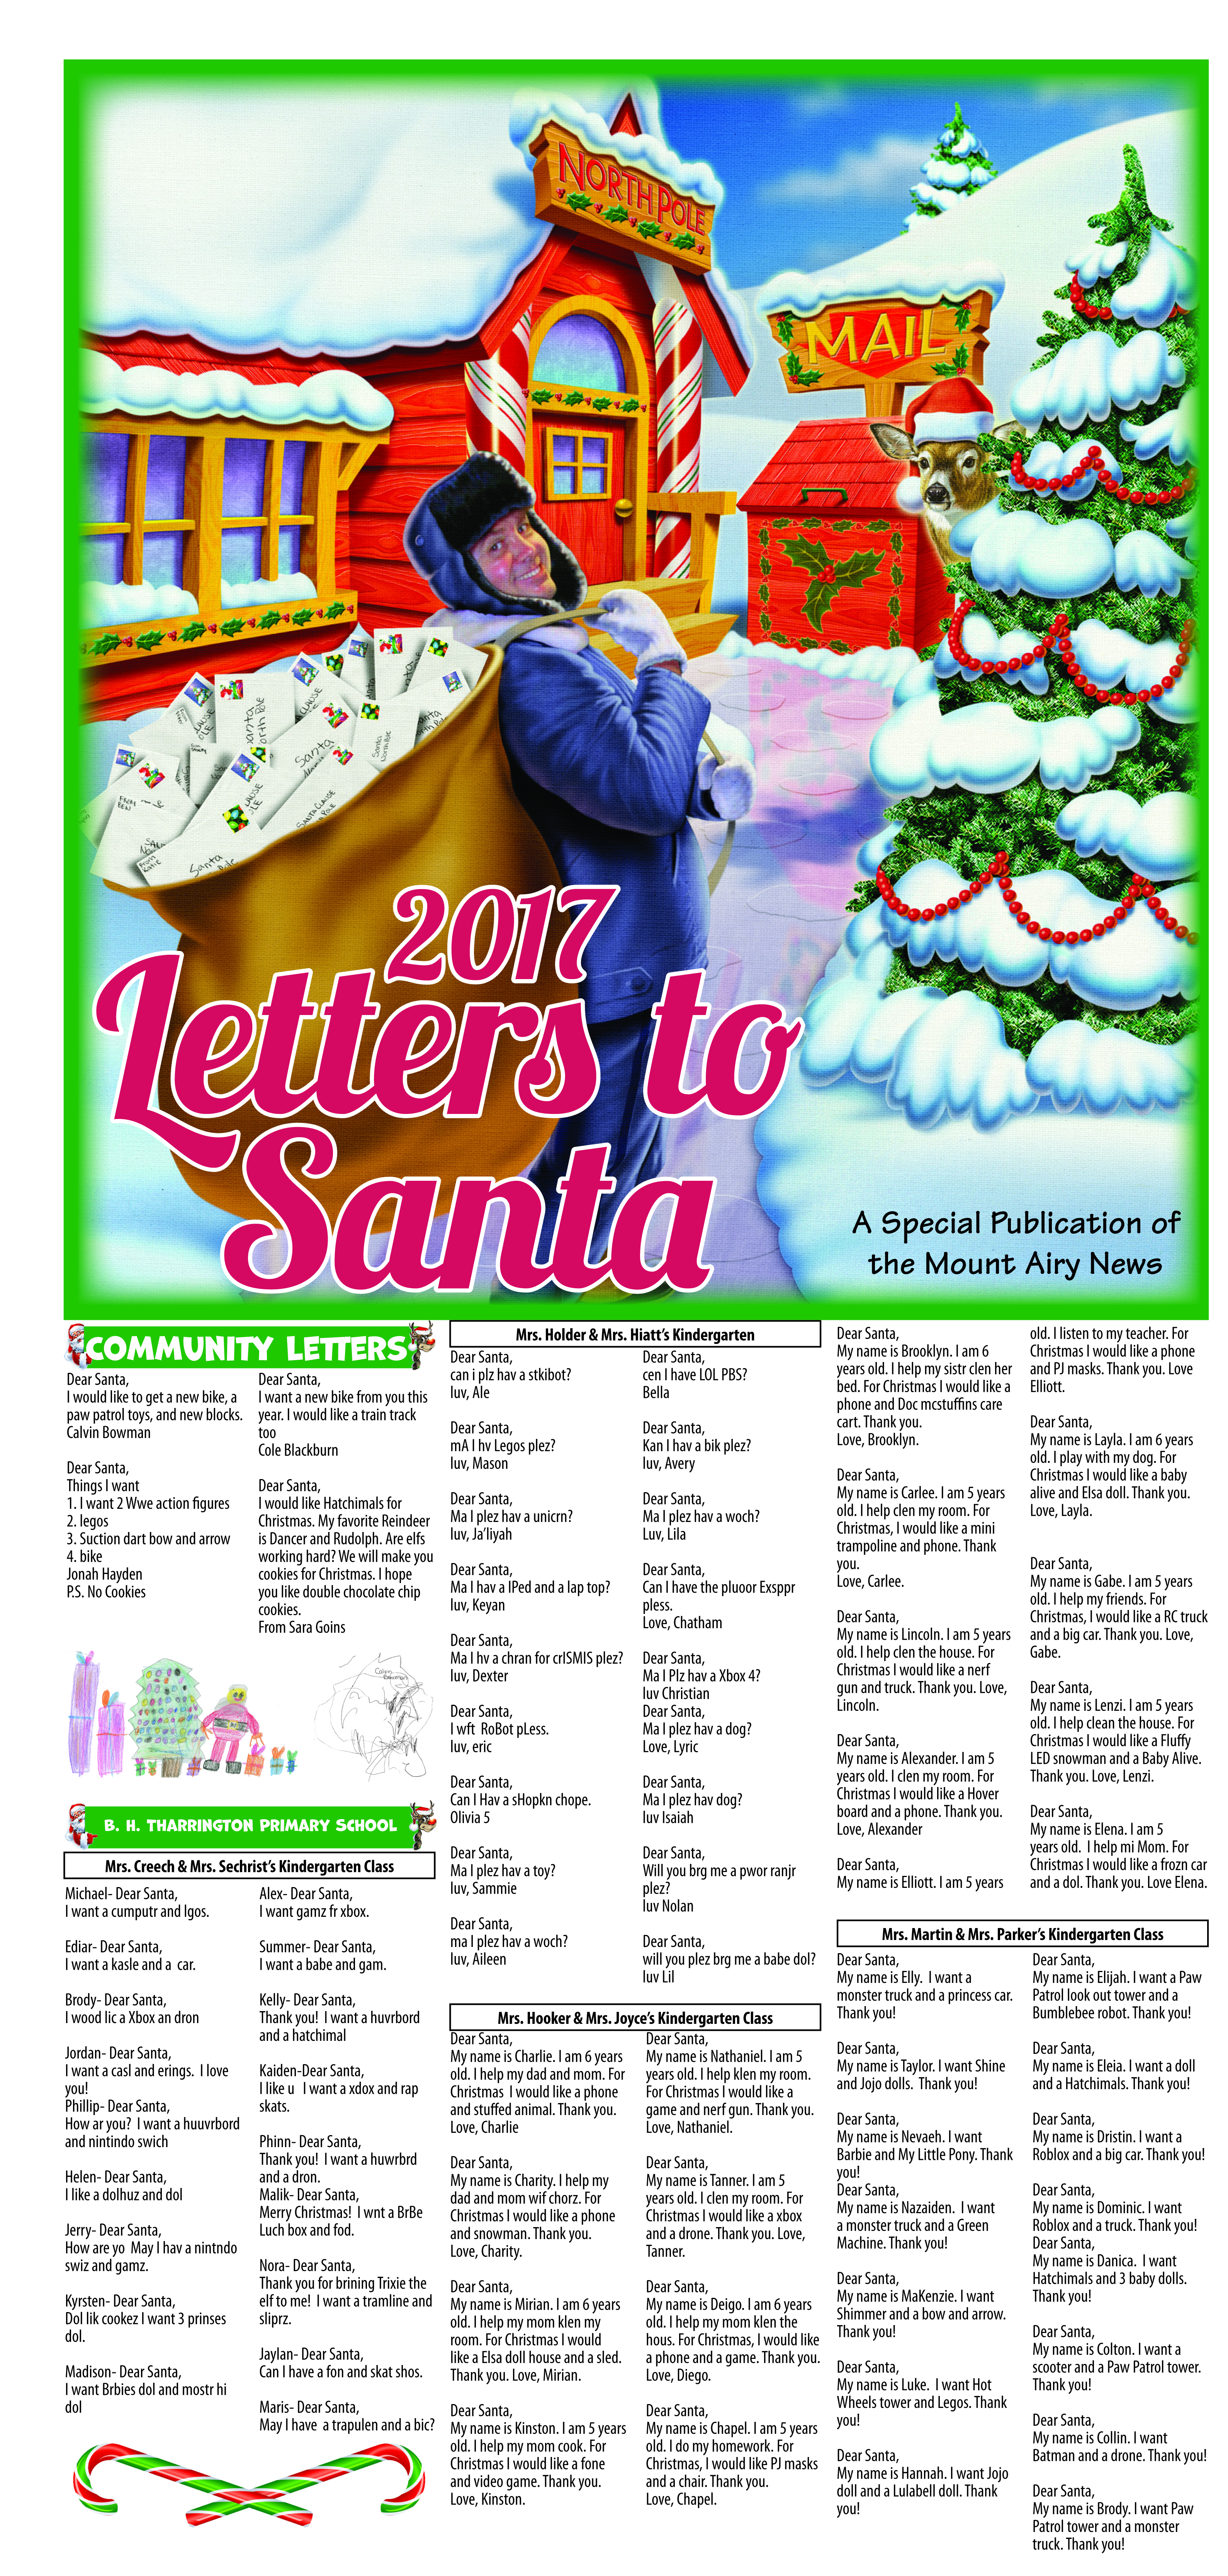 Mount Airy Letters to Santa